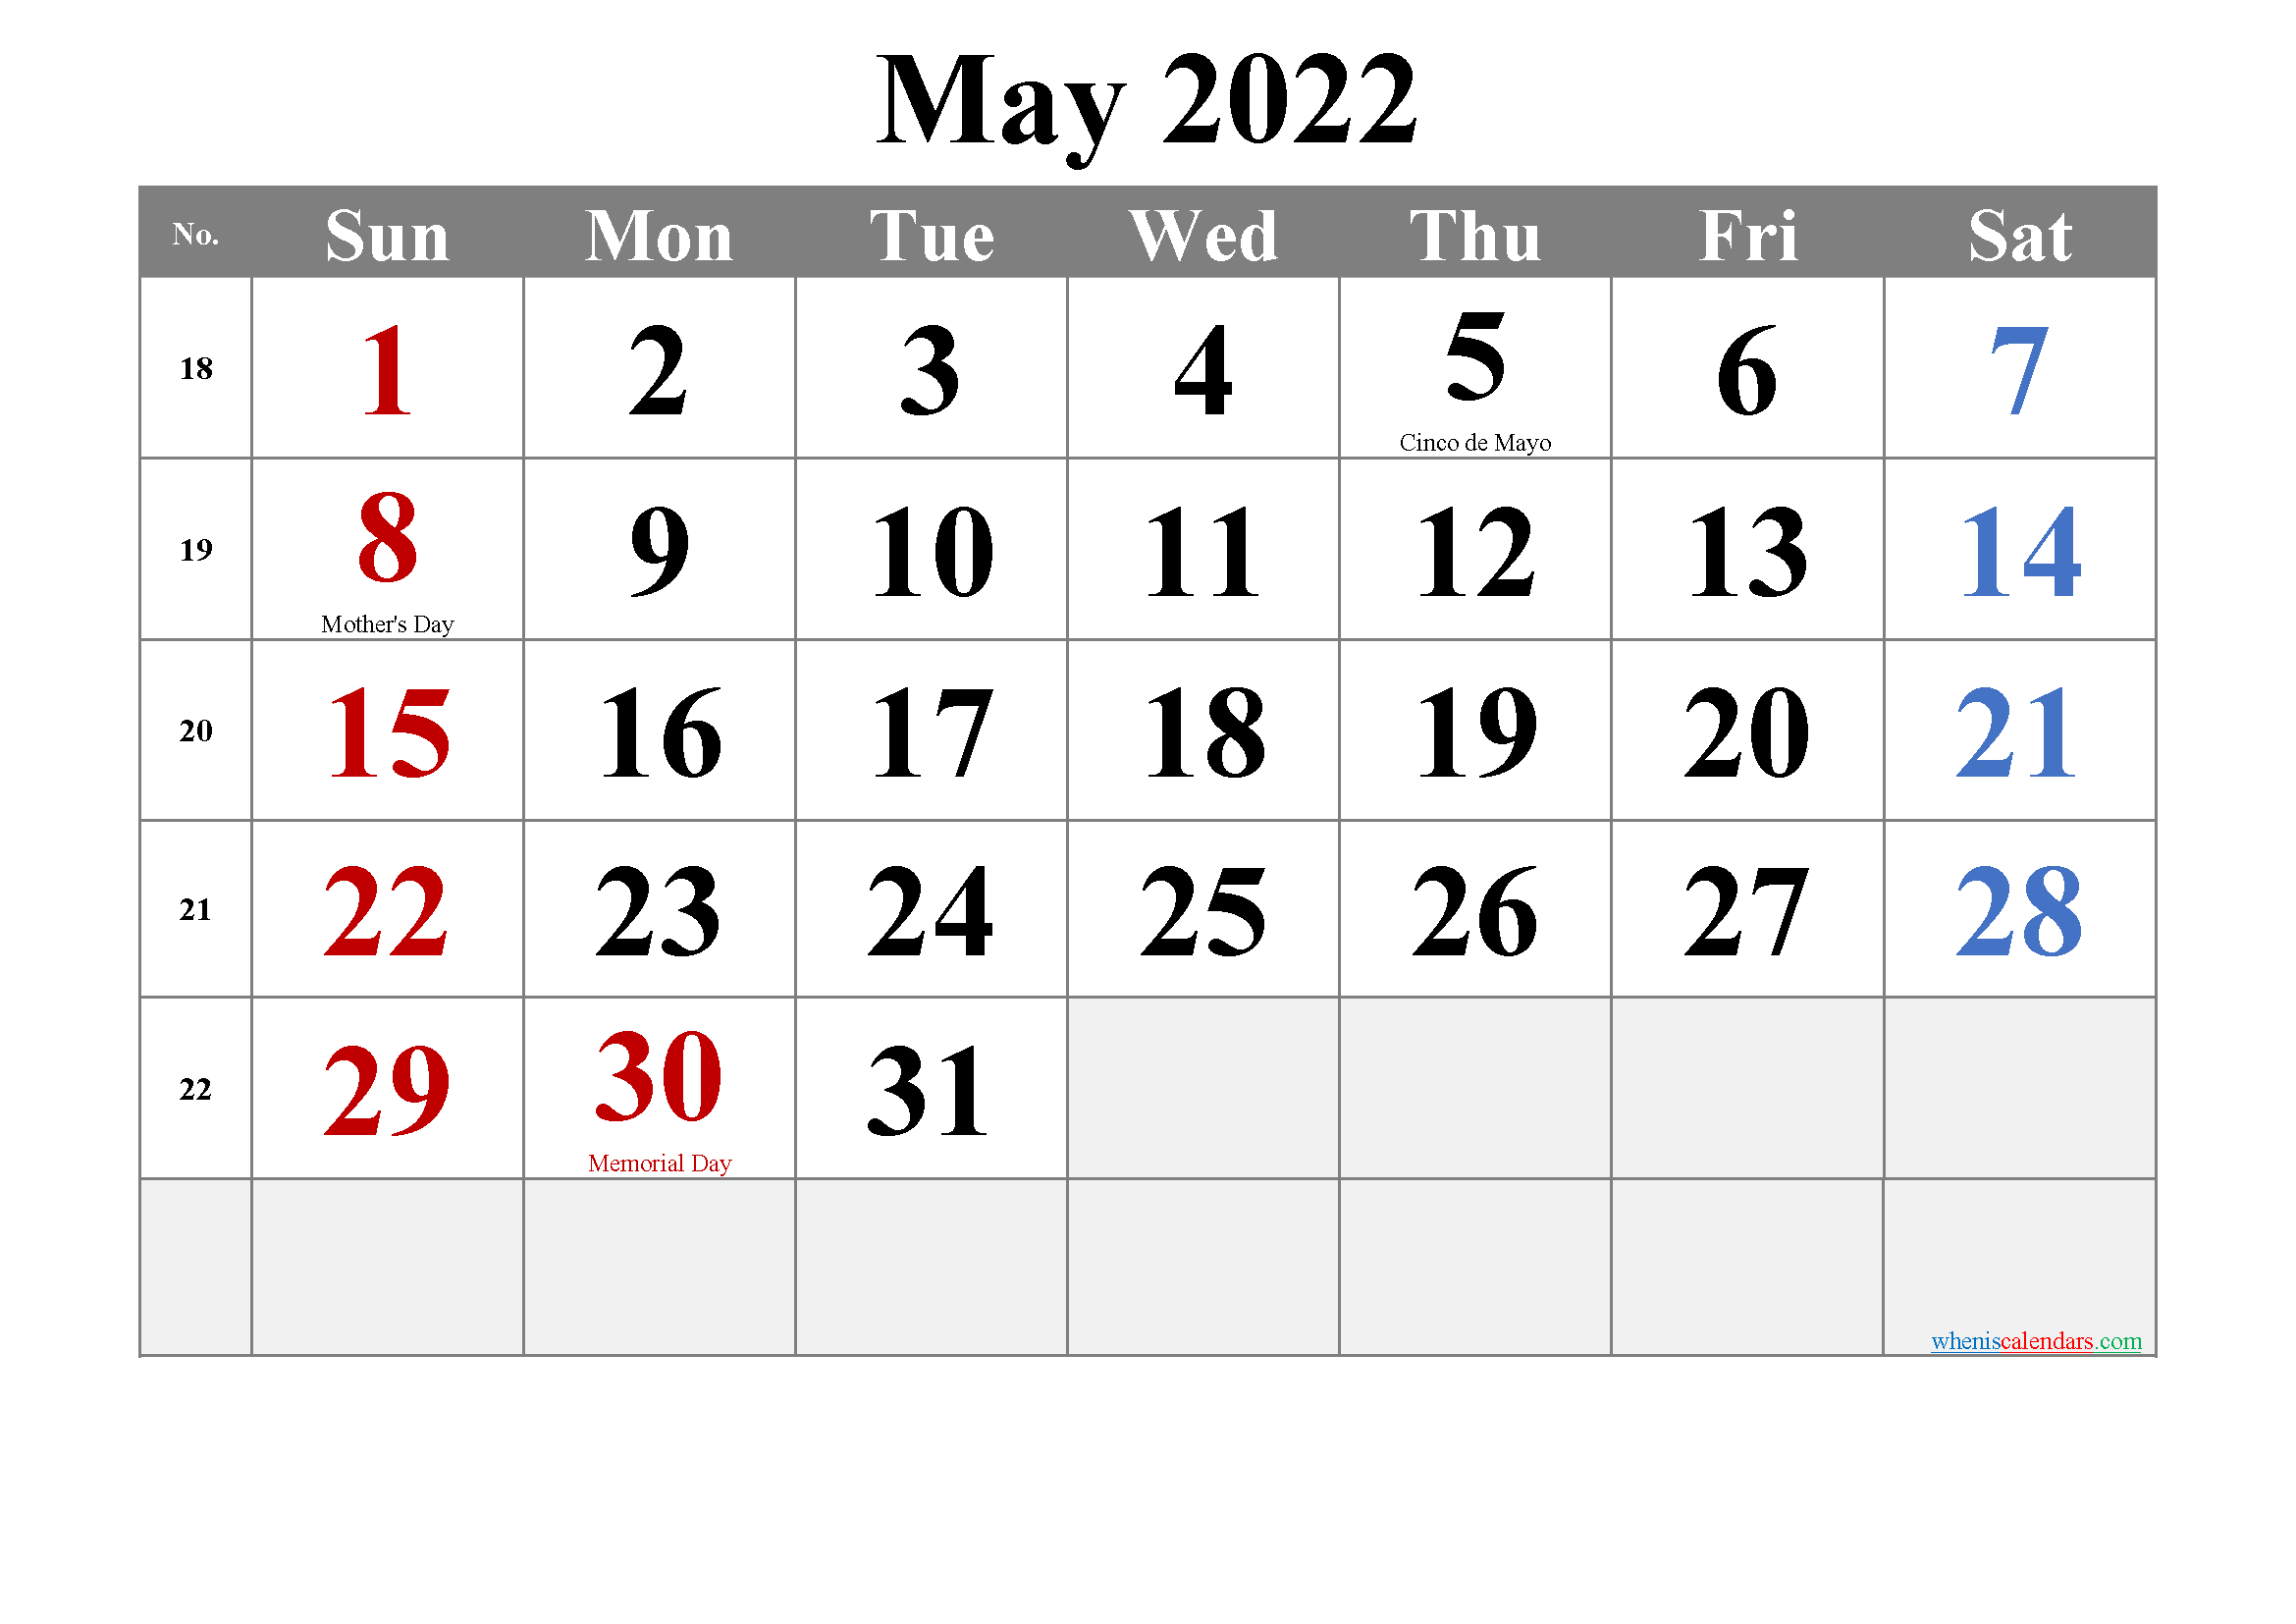 Free Printable MAY 2022 Calendar with Holidays